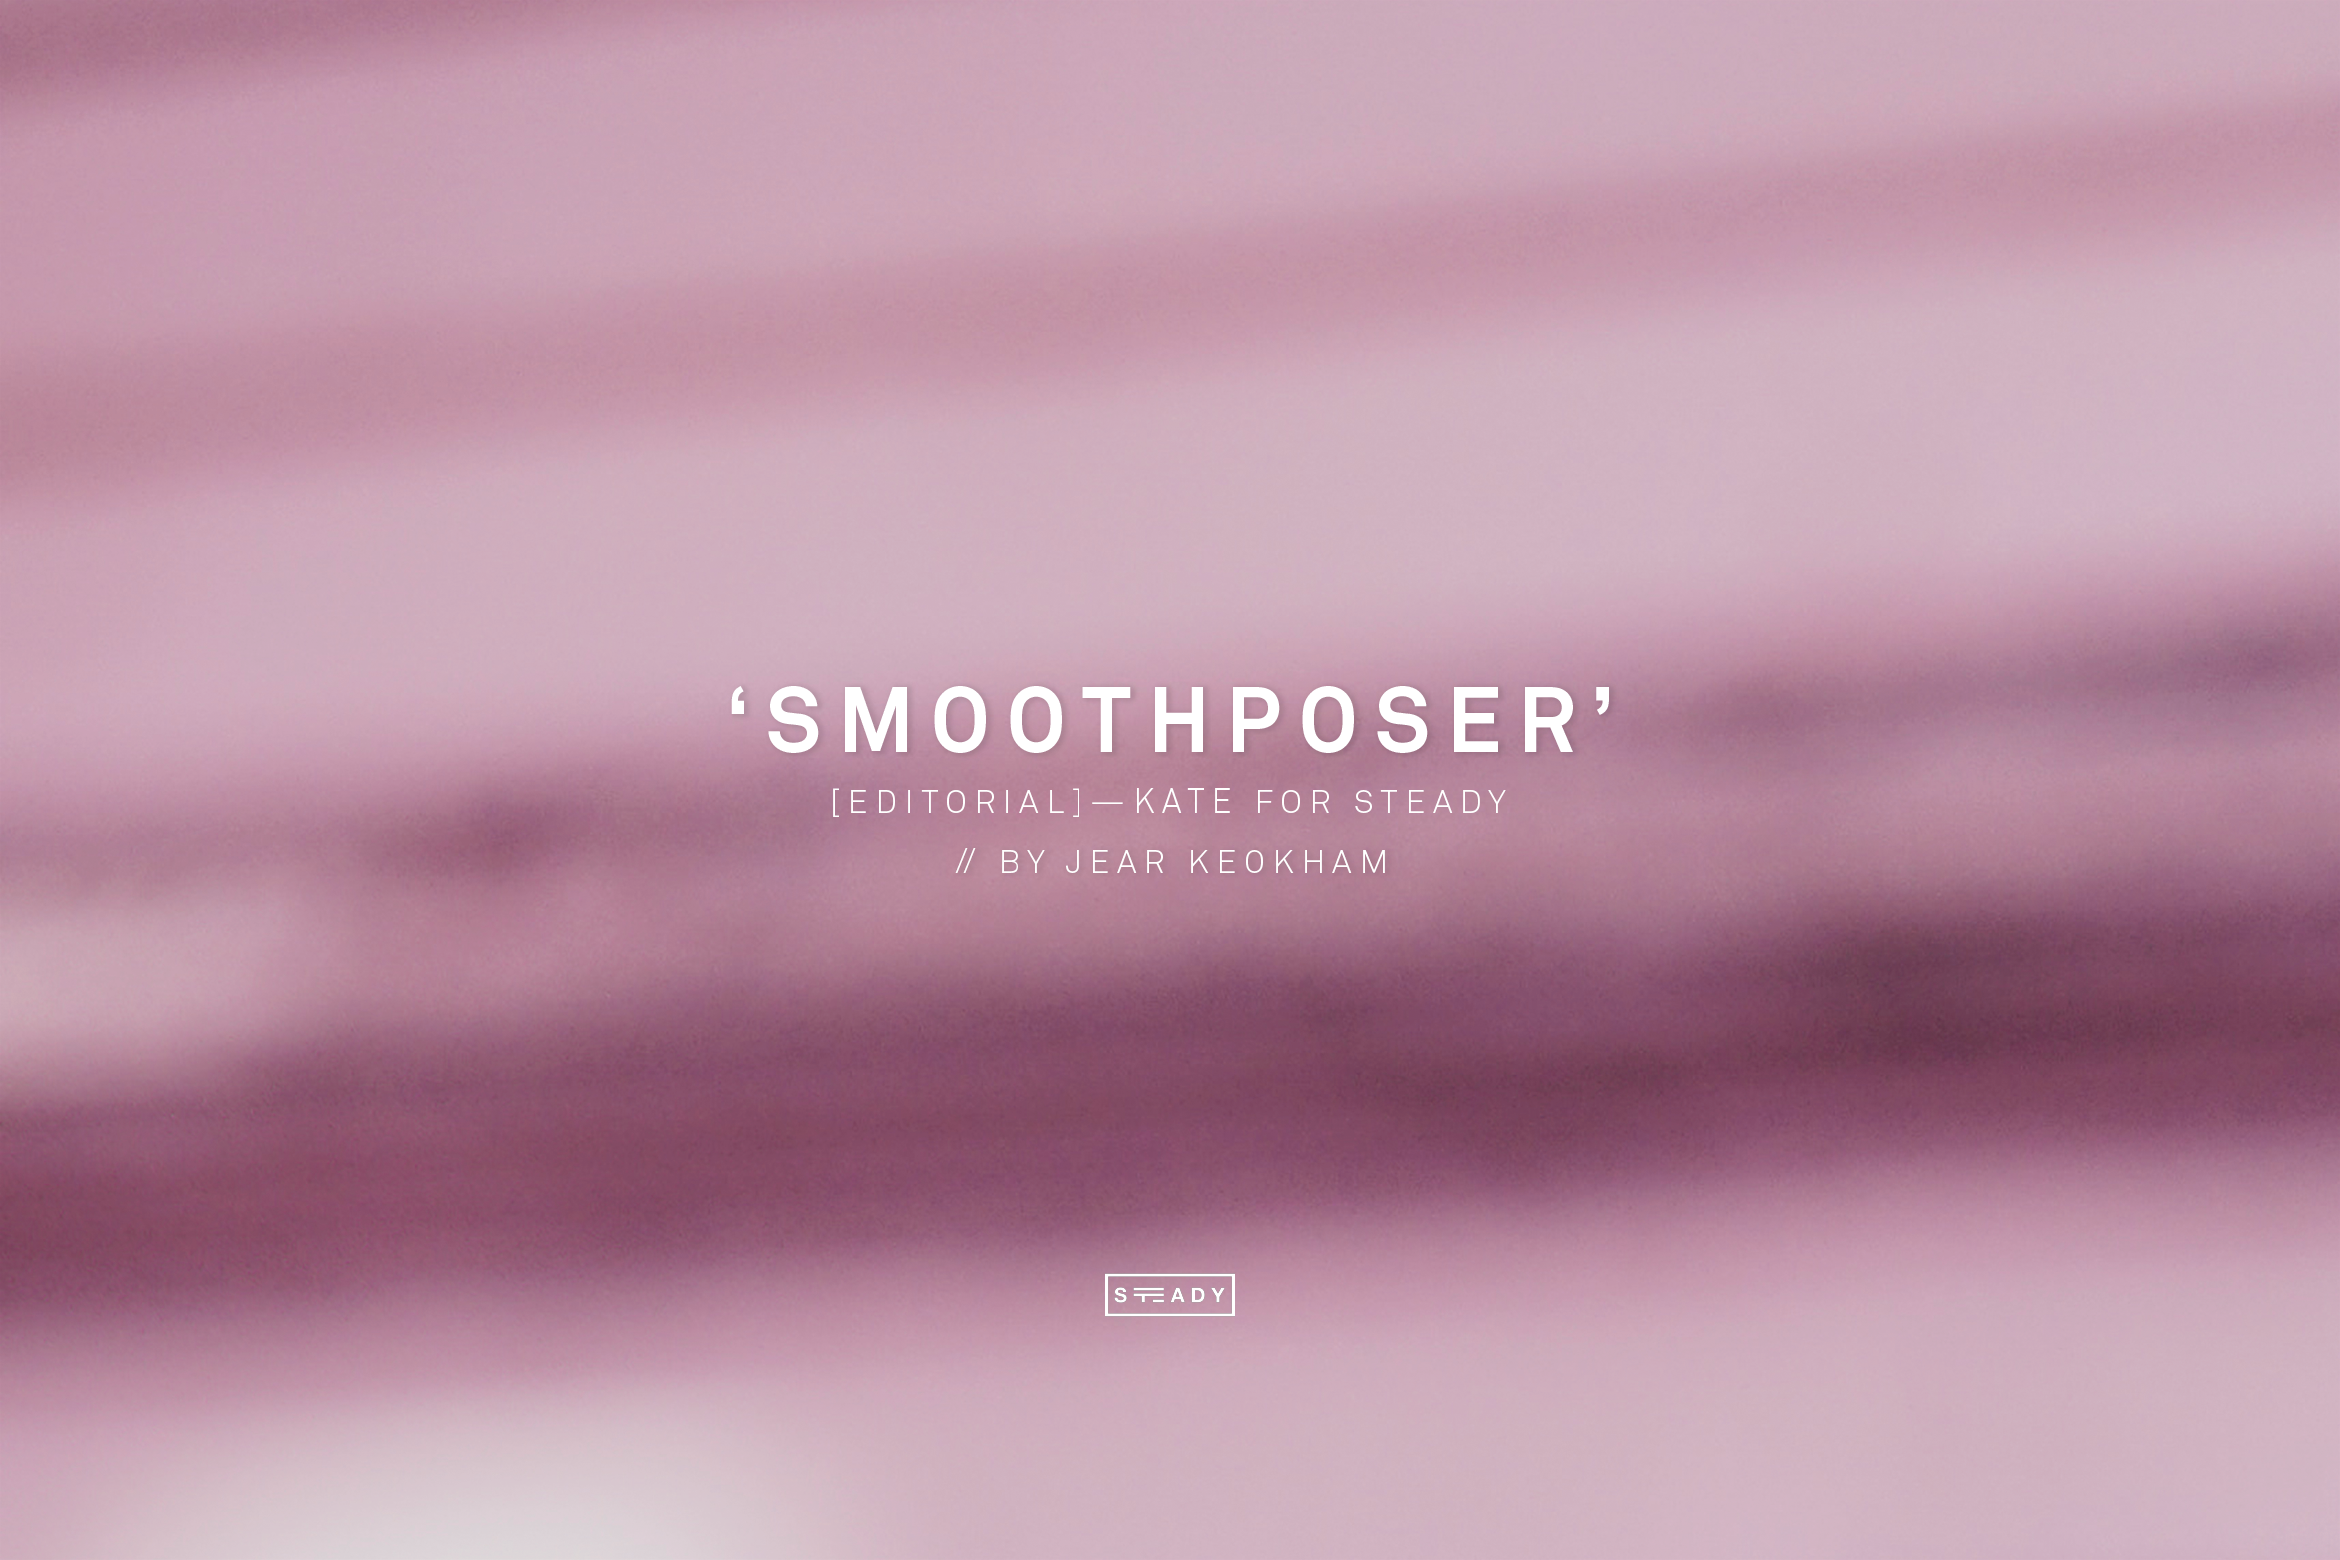 SMOOTHPOSER EDITORIAL // BY JEAR KEOKHAM